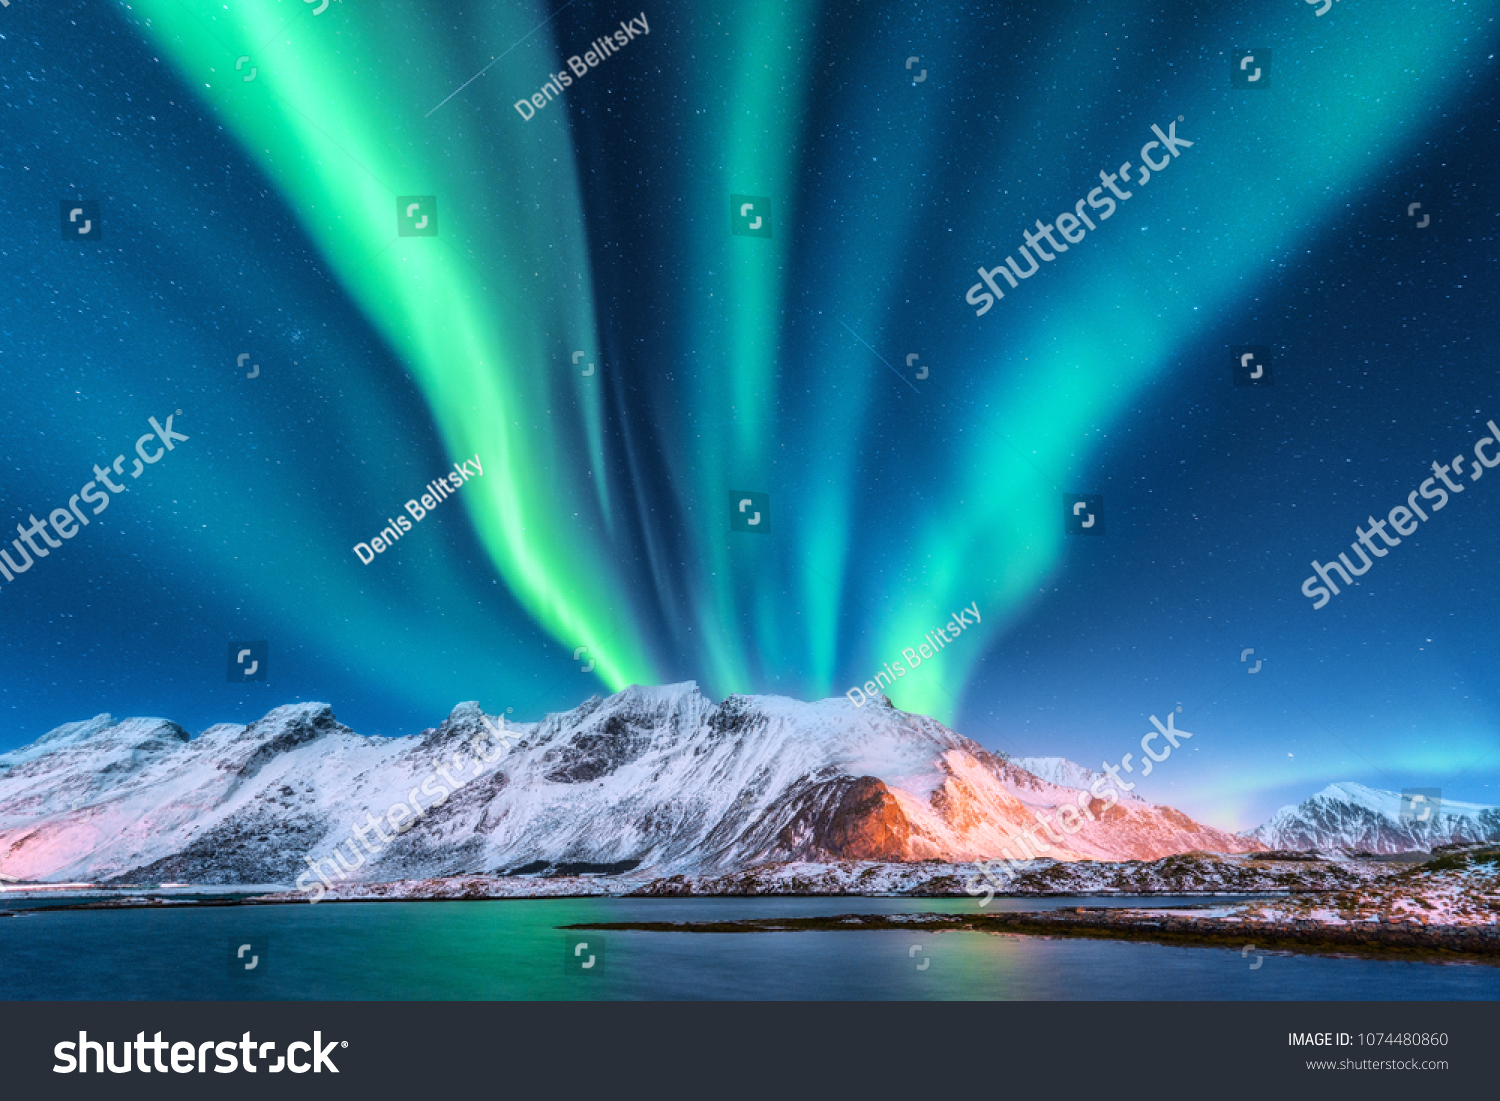 Aurora borealis. Lofoten islands, Norway. Aurora. Green northern lights. Starry sky with polar lights. Night winter landscape with aurora, sea with sky reflection and snowy mountains.Nature background #1074480860